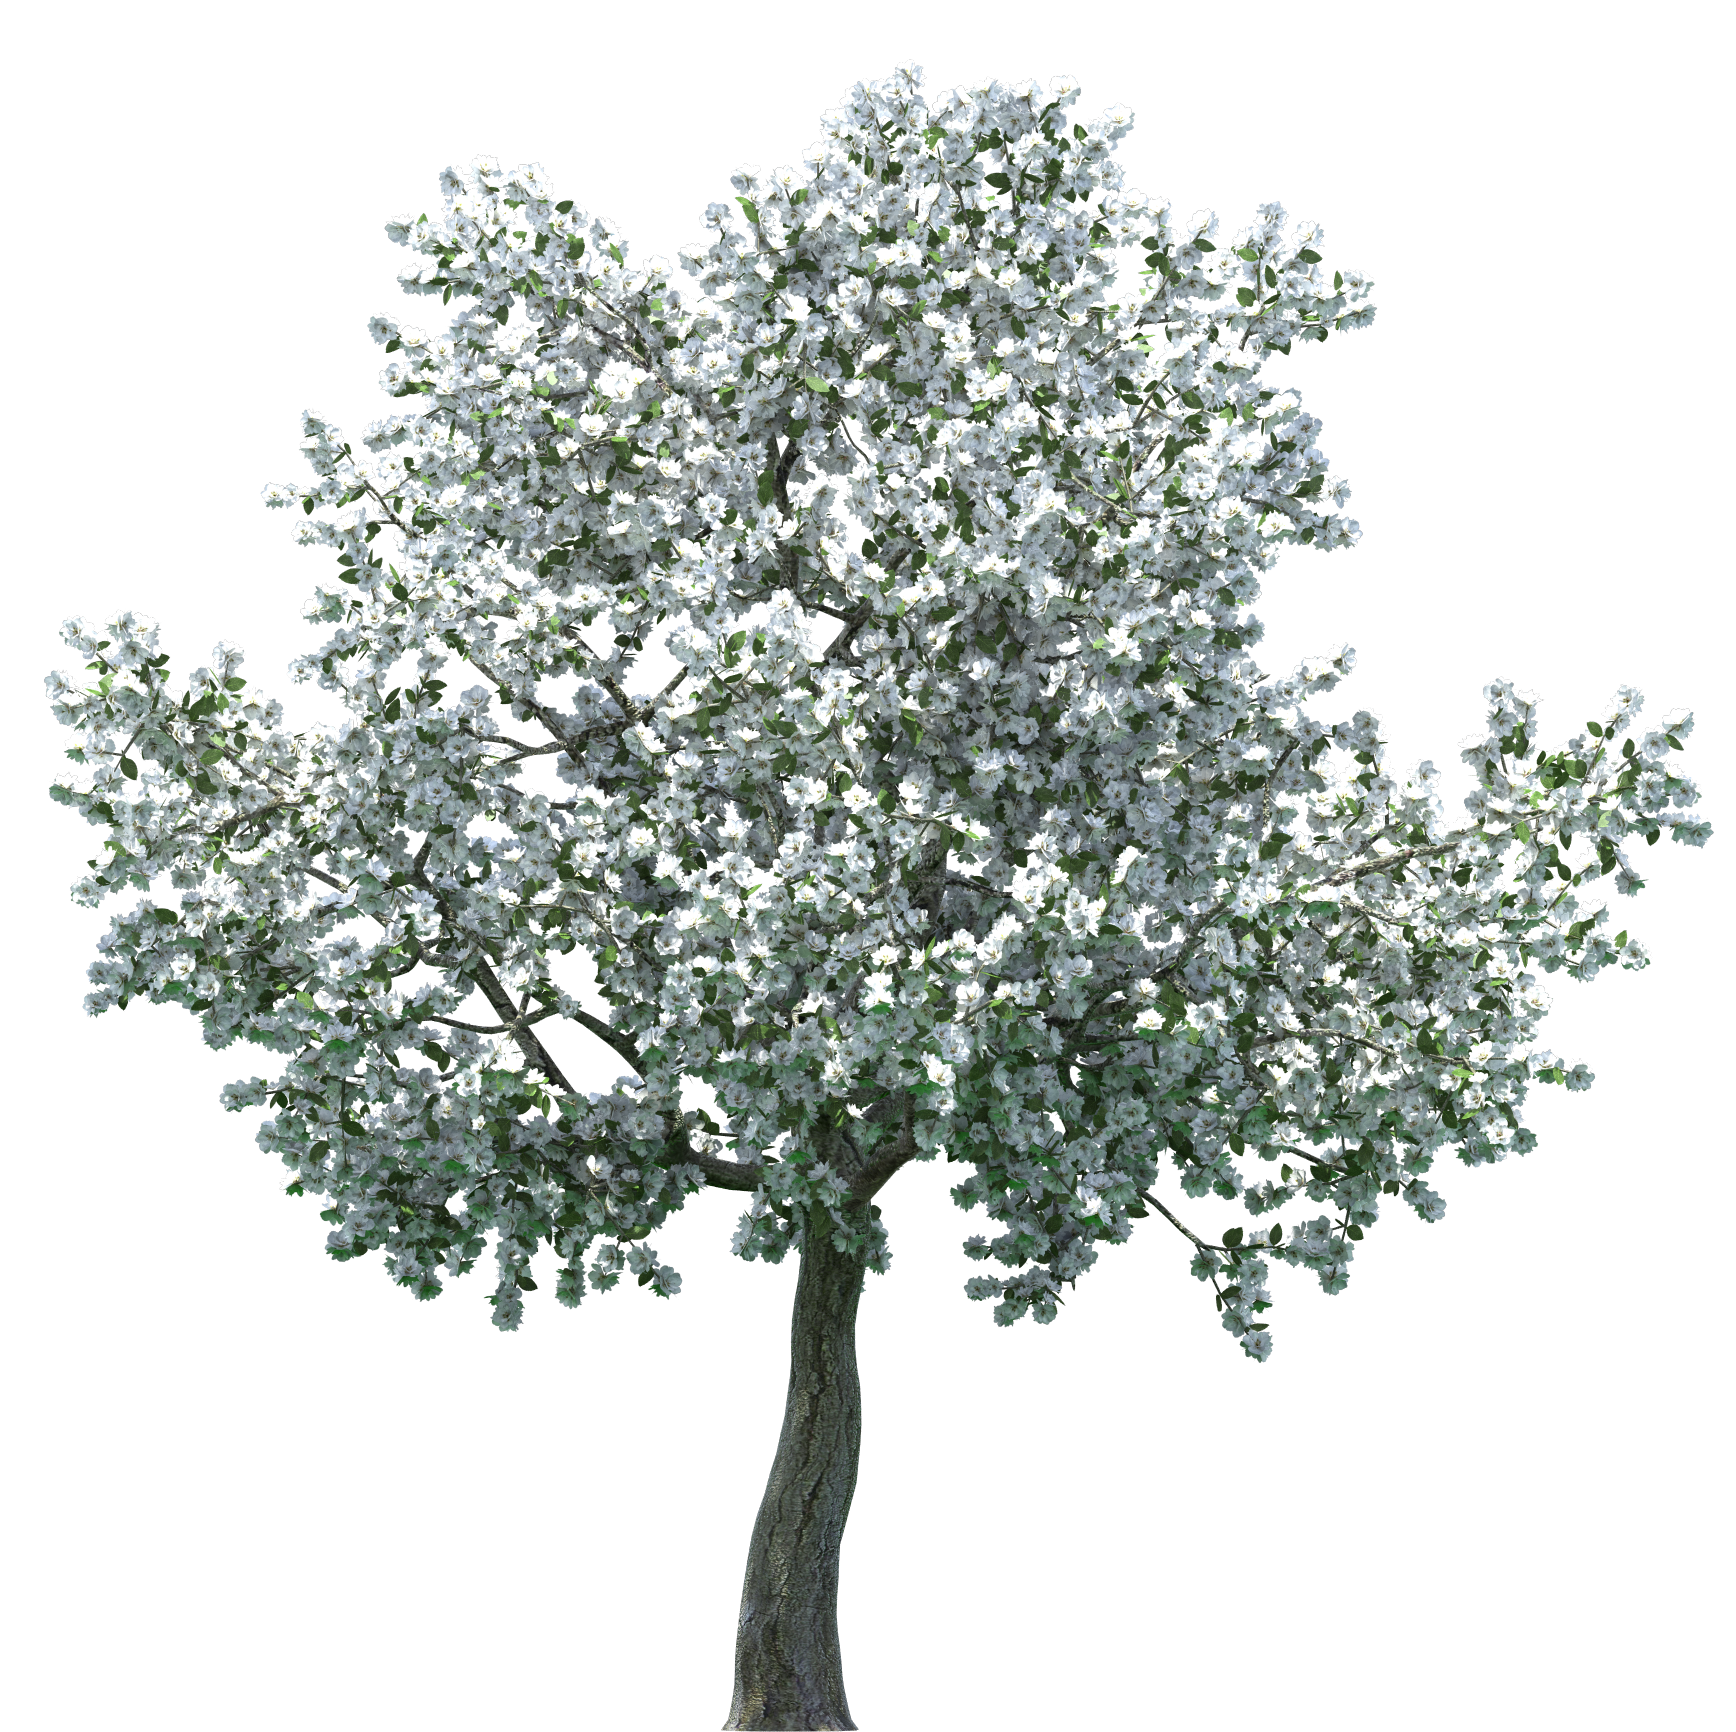 Apple tree png. Realistic blossom clip art